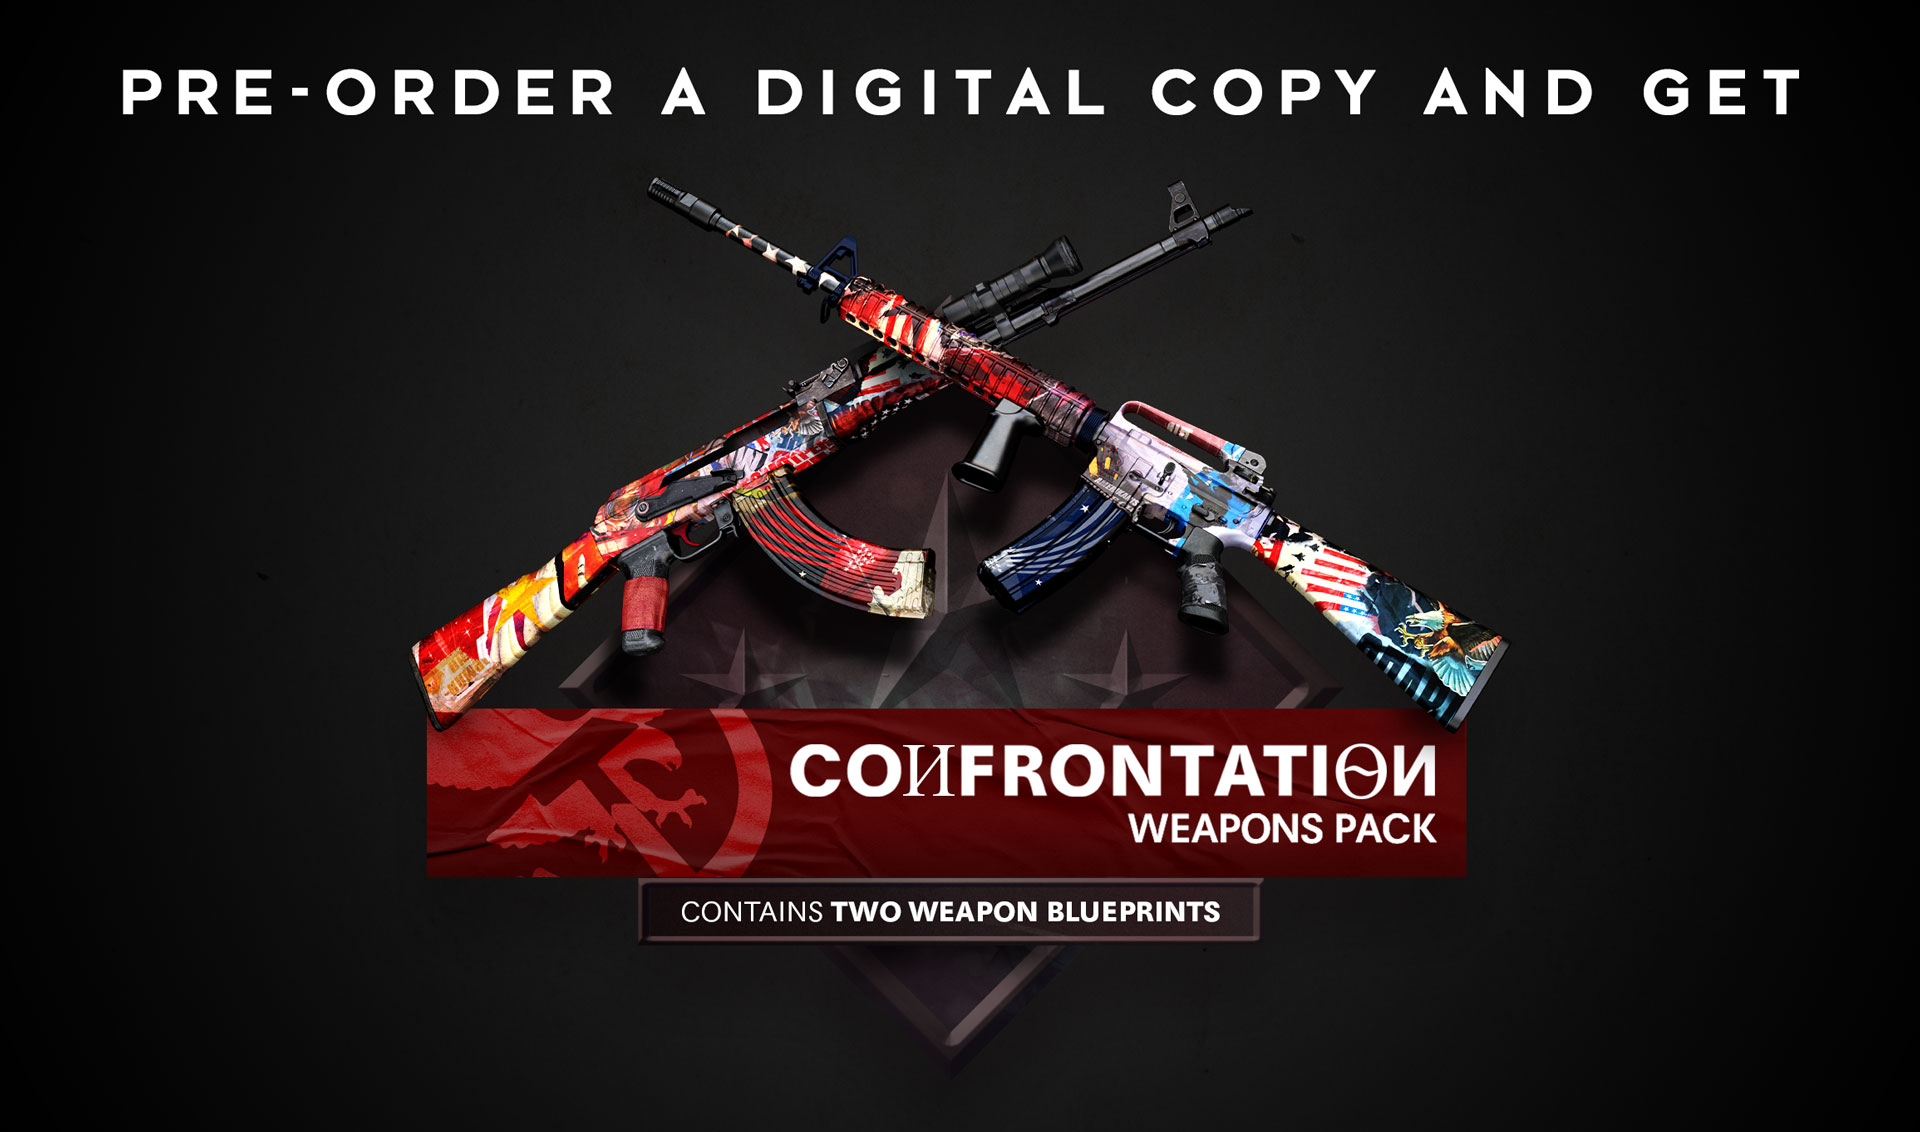 Call Of Duty Black Ops Cold War Pre Loading File Size And Confrontation Weapon Pack Details